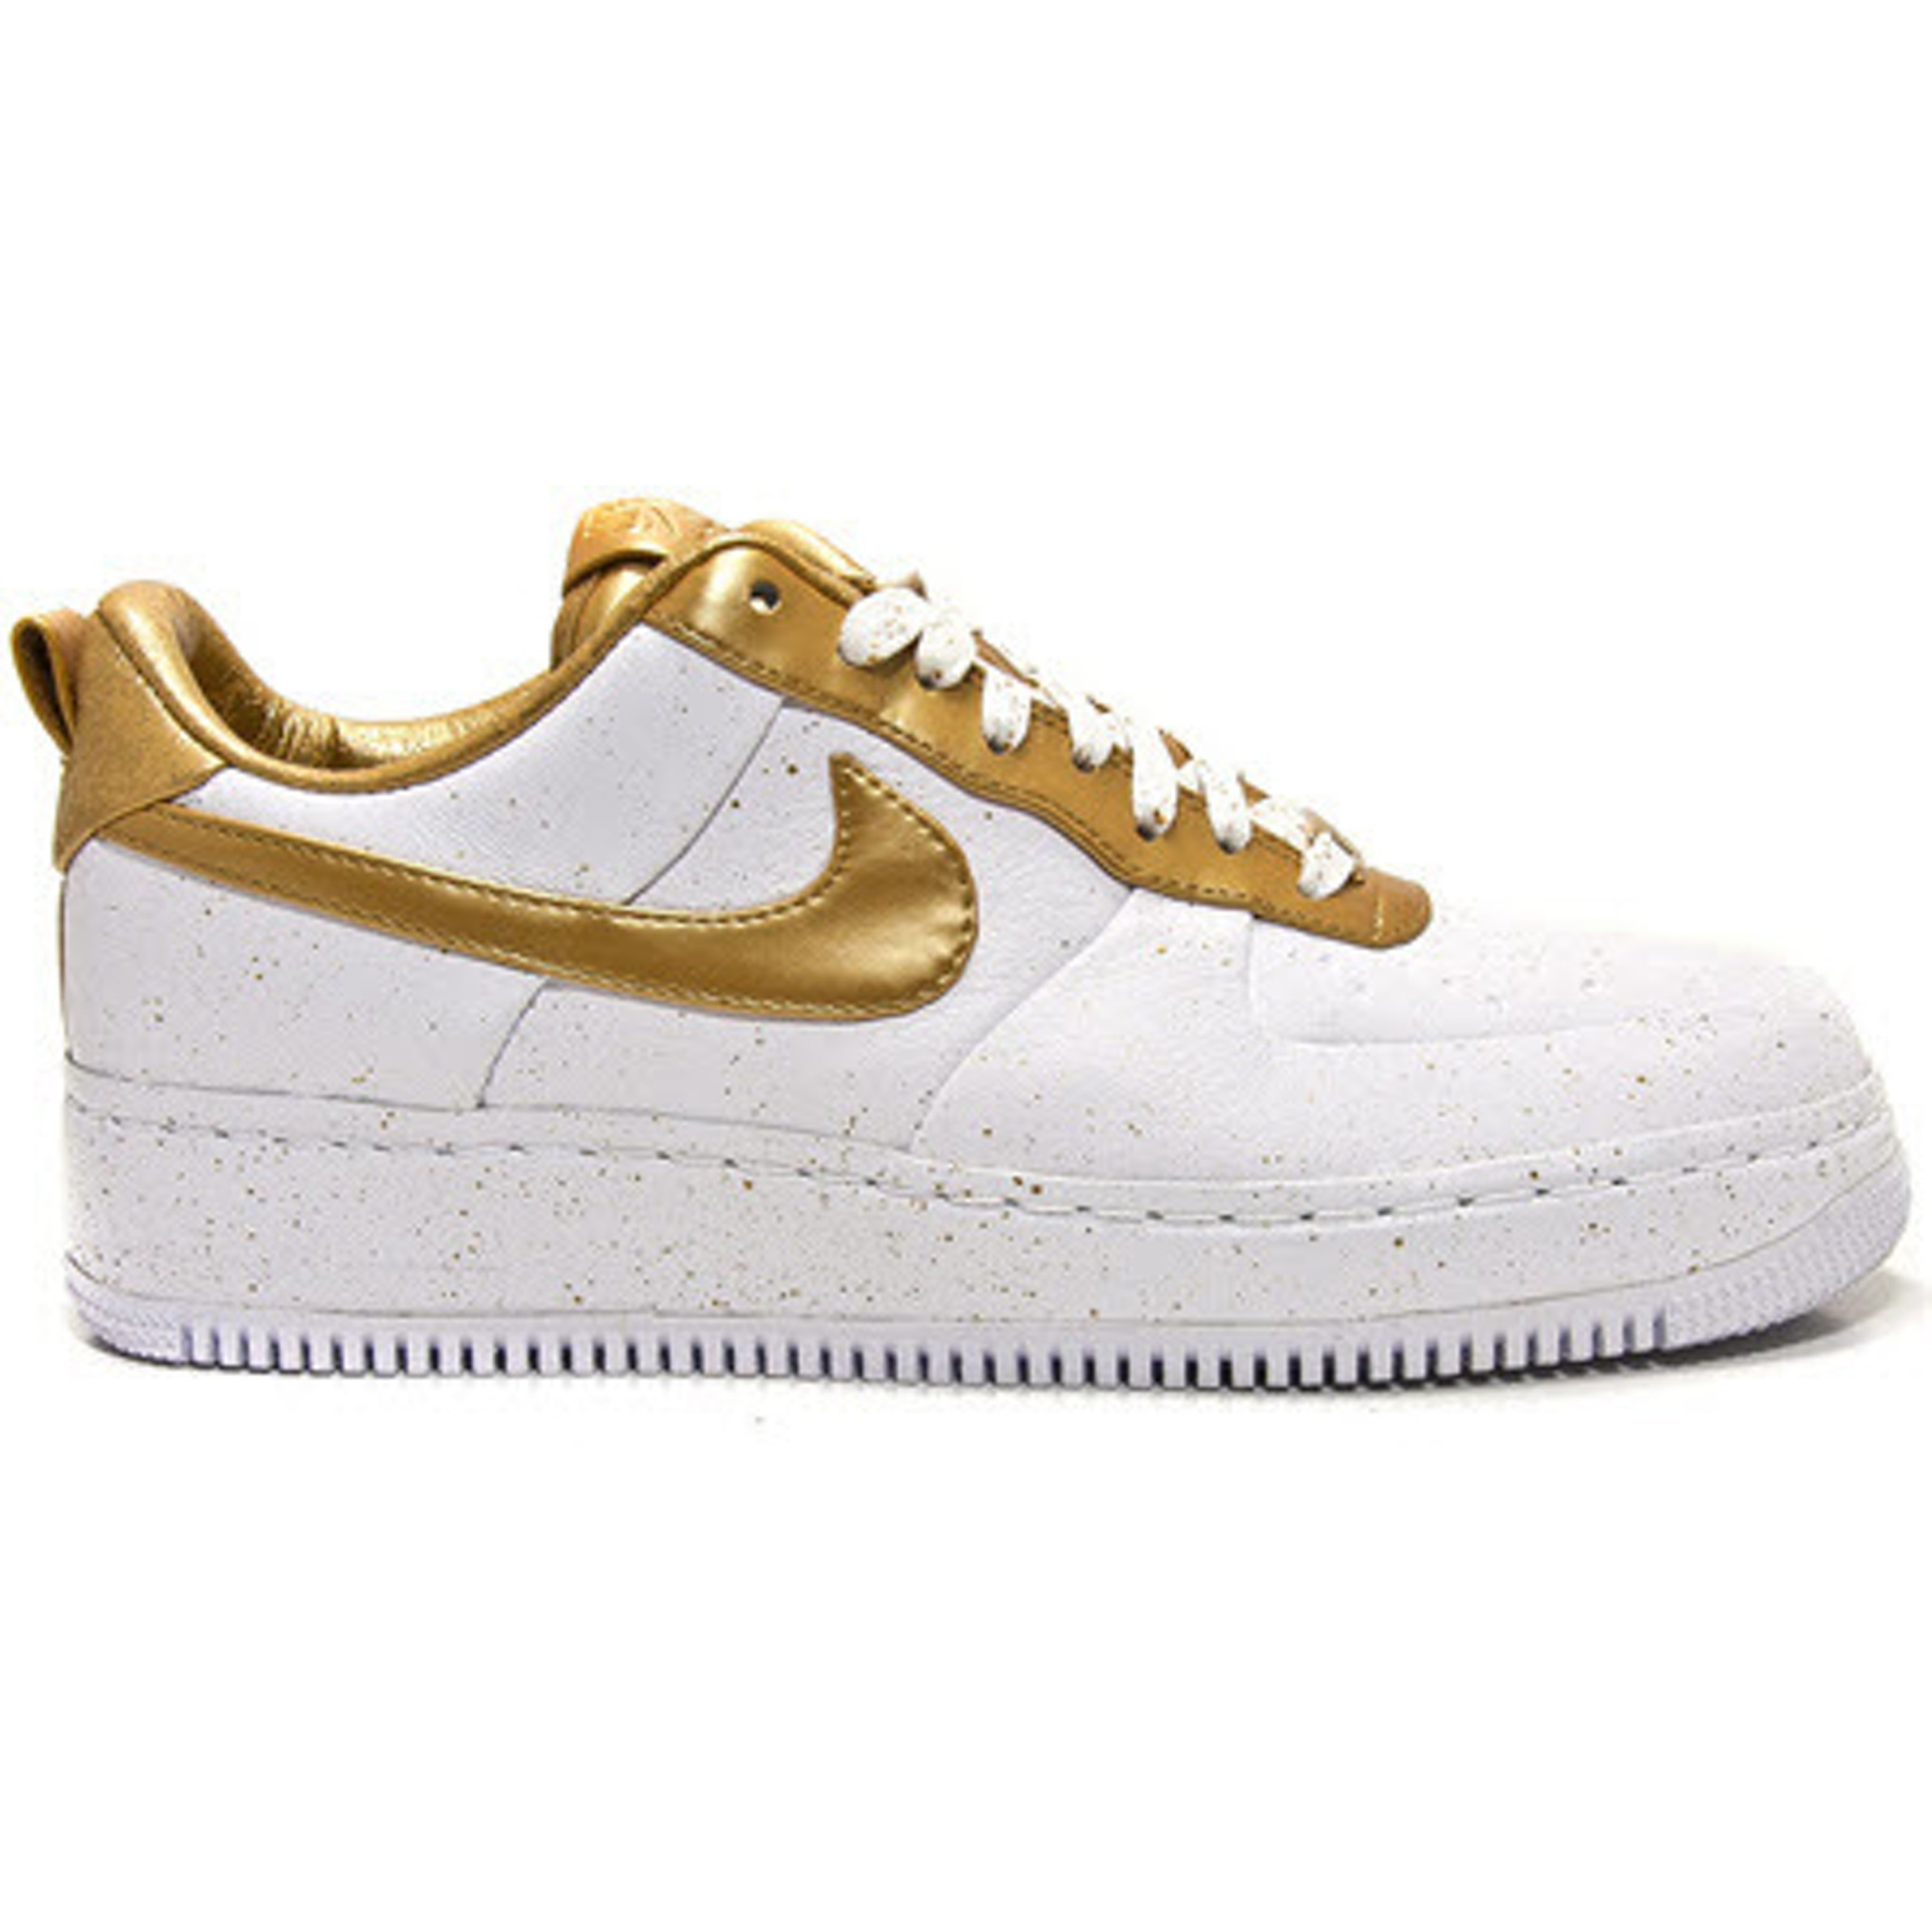 Nike Air Force 1 Low Supreme Gold Medal (516630-170)